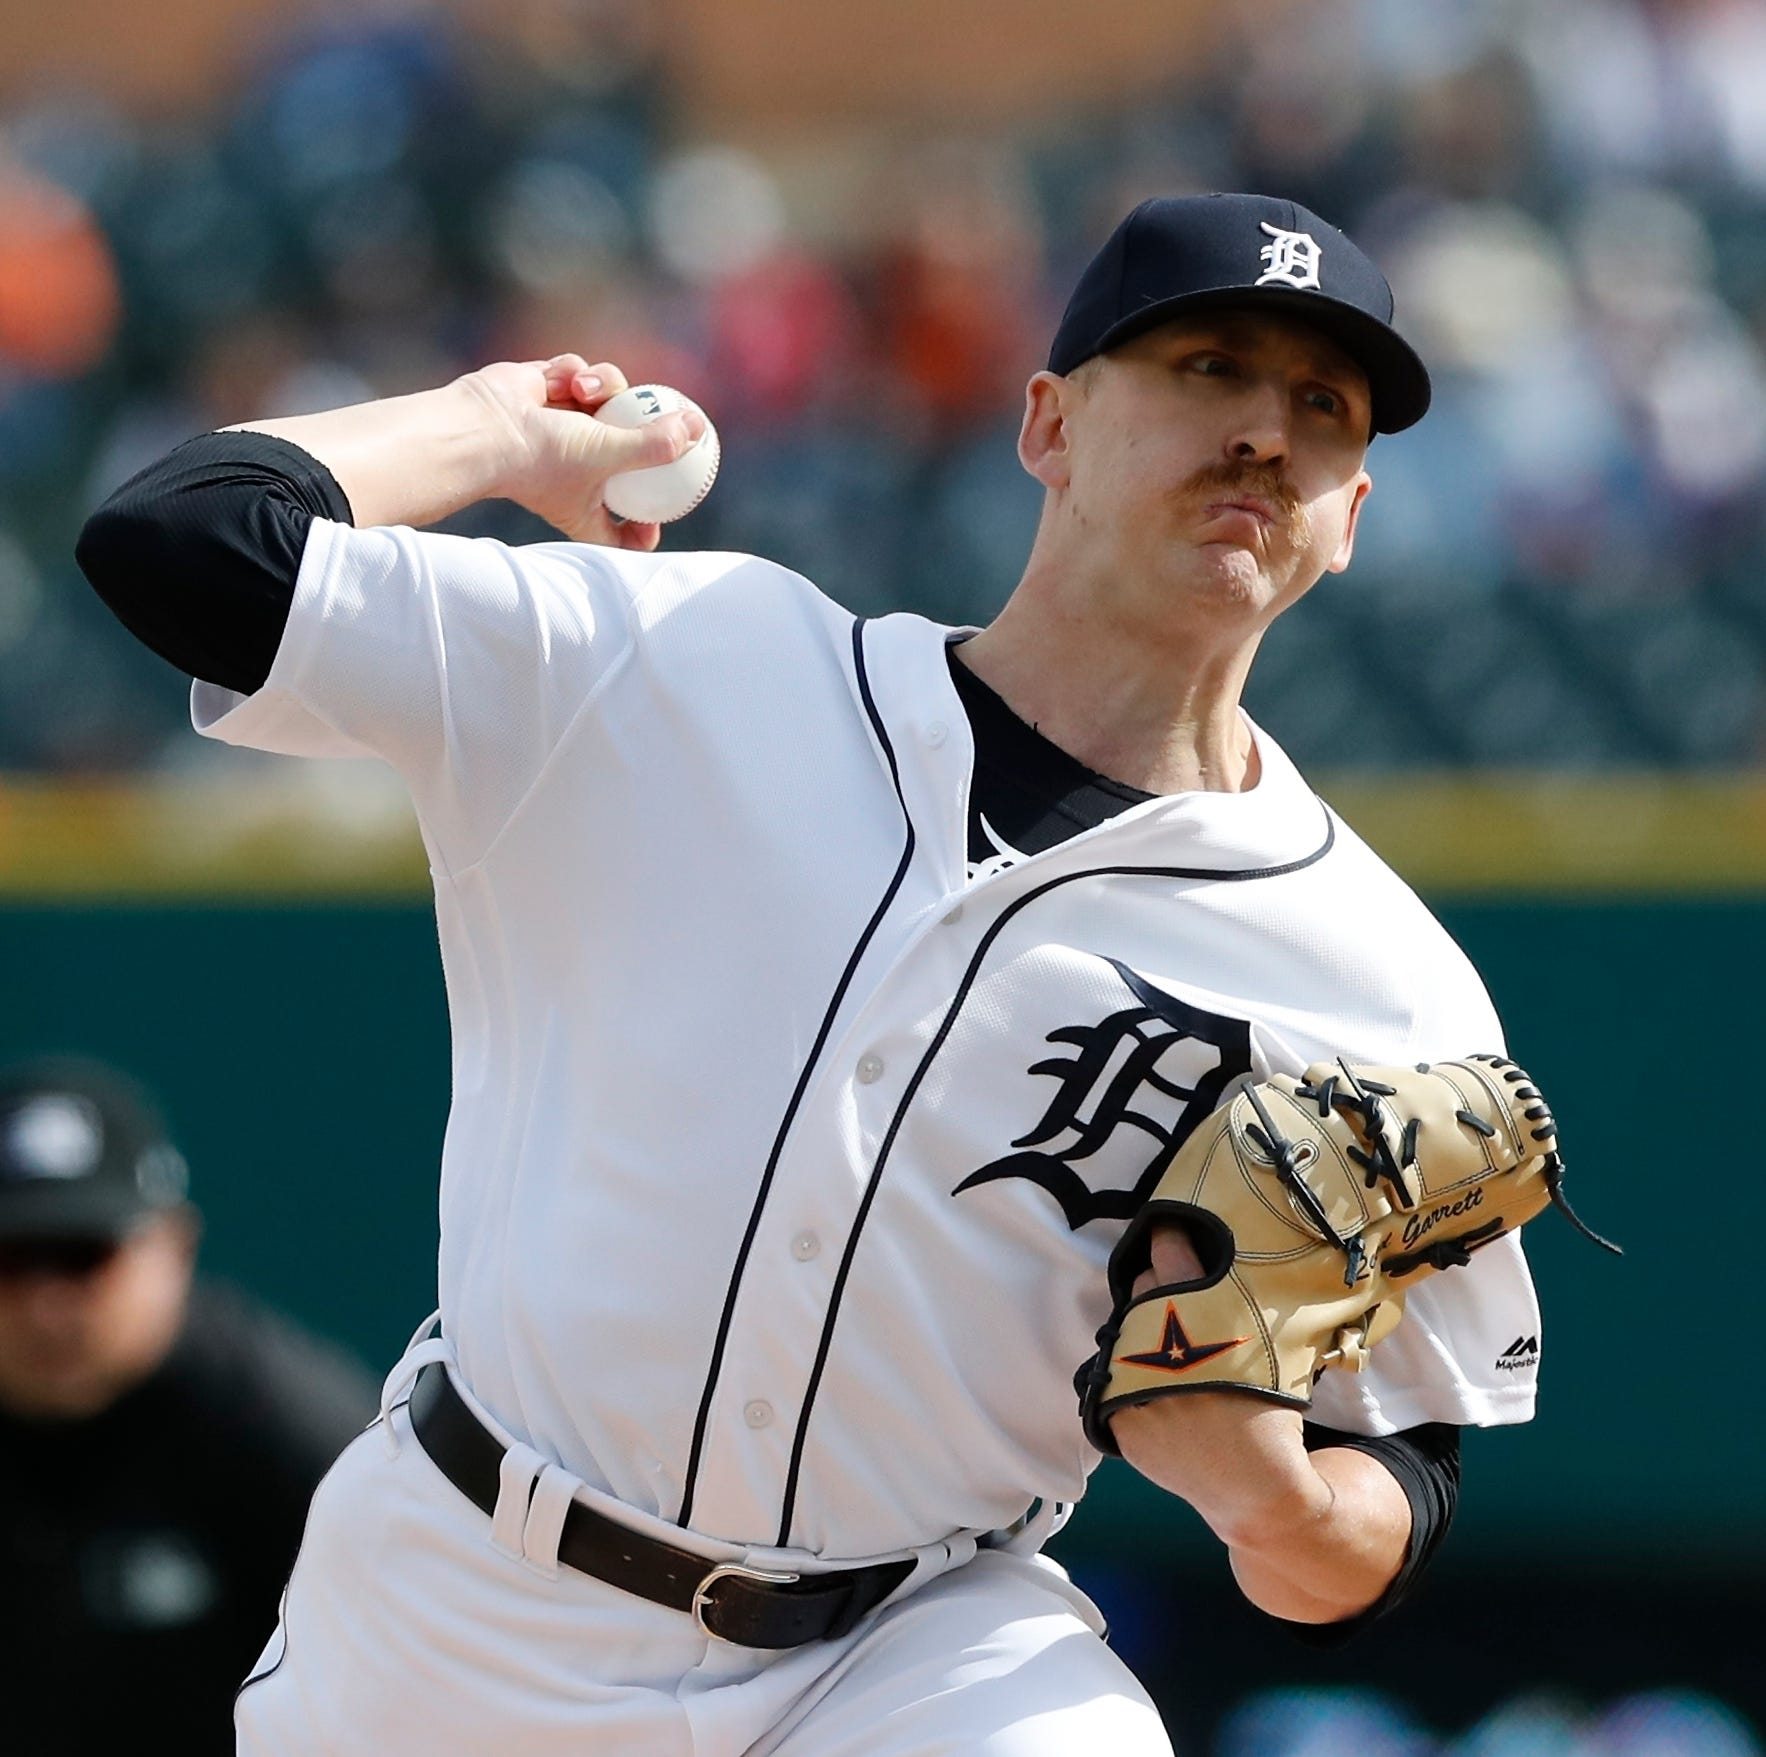 Game thread: Tigers blasted by Royals, 15-3